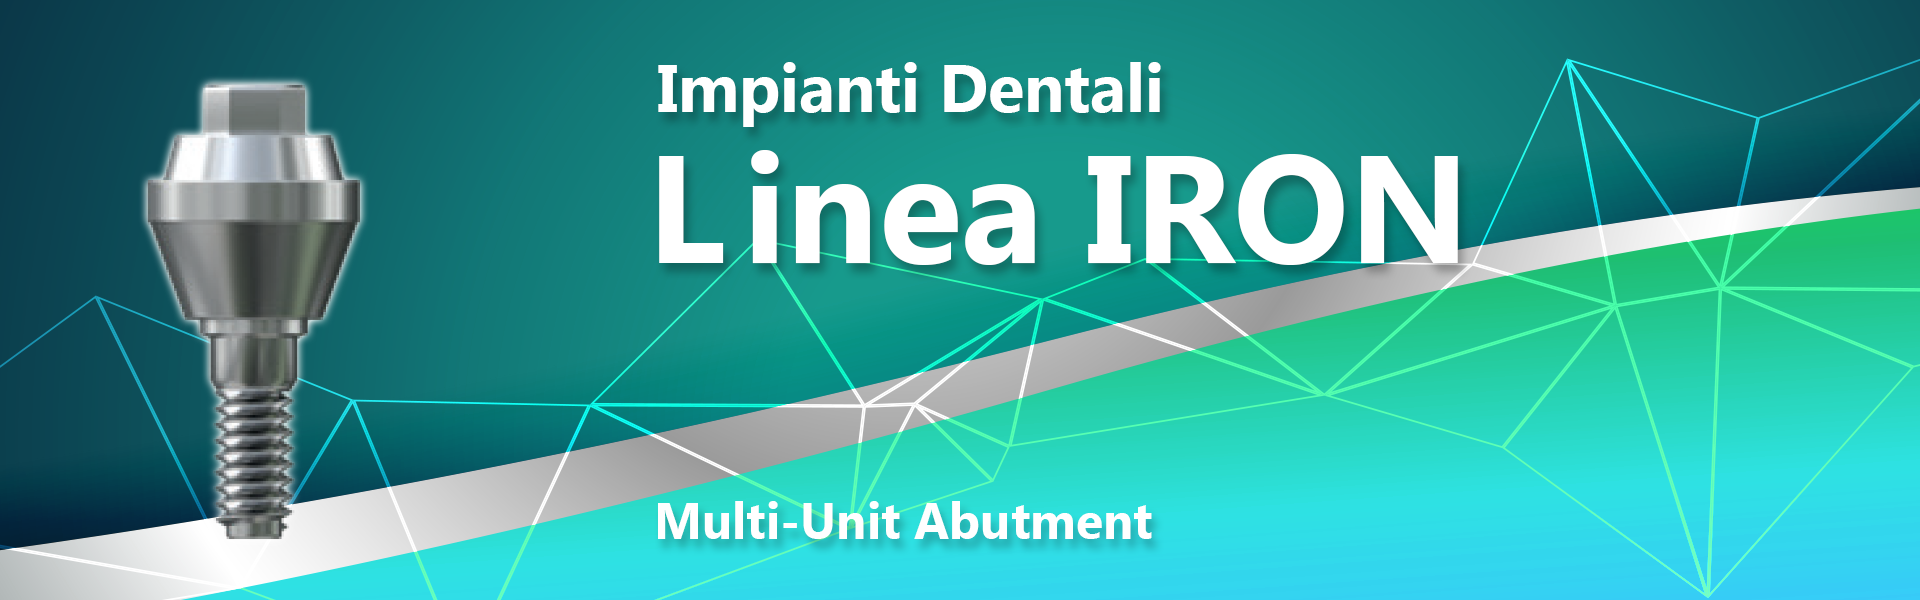 Multi-Unit Abutment